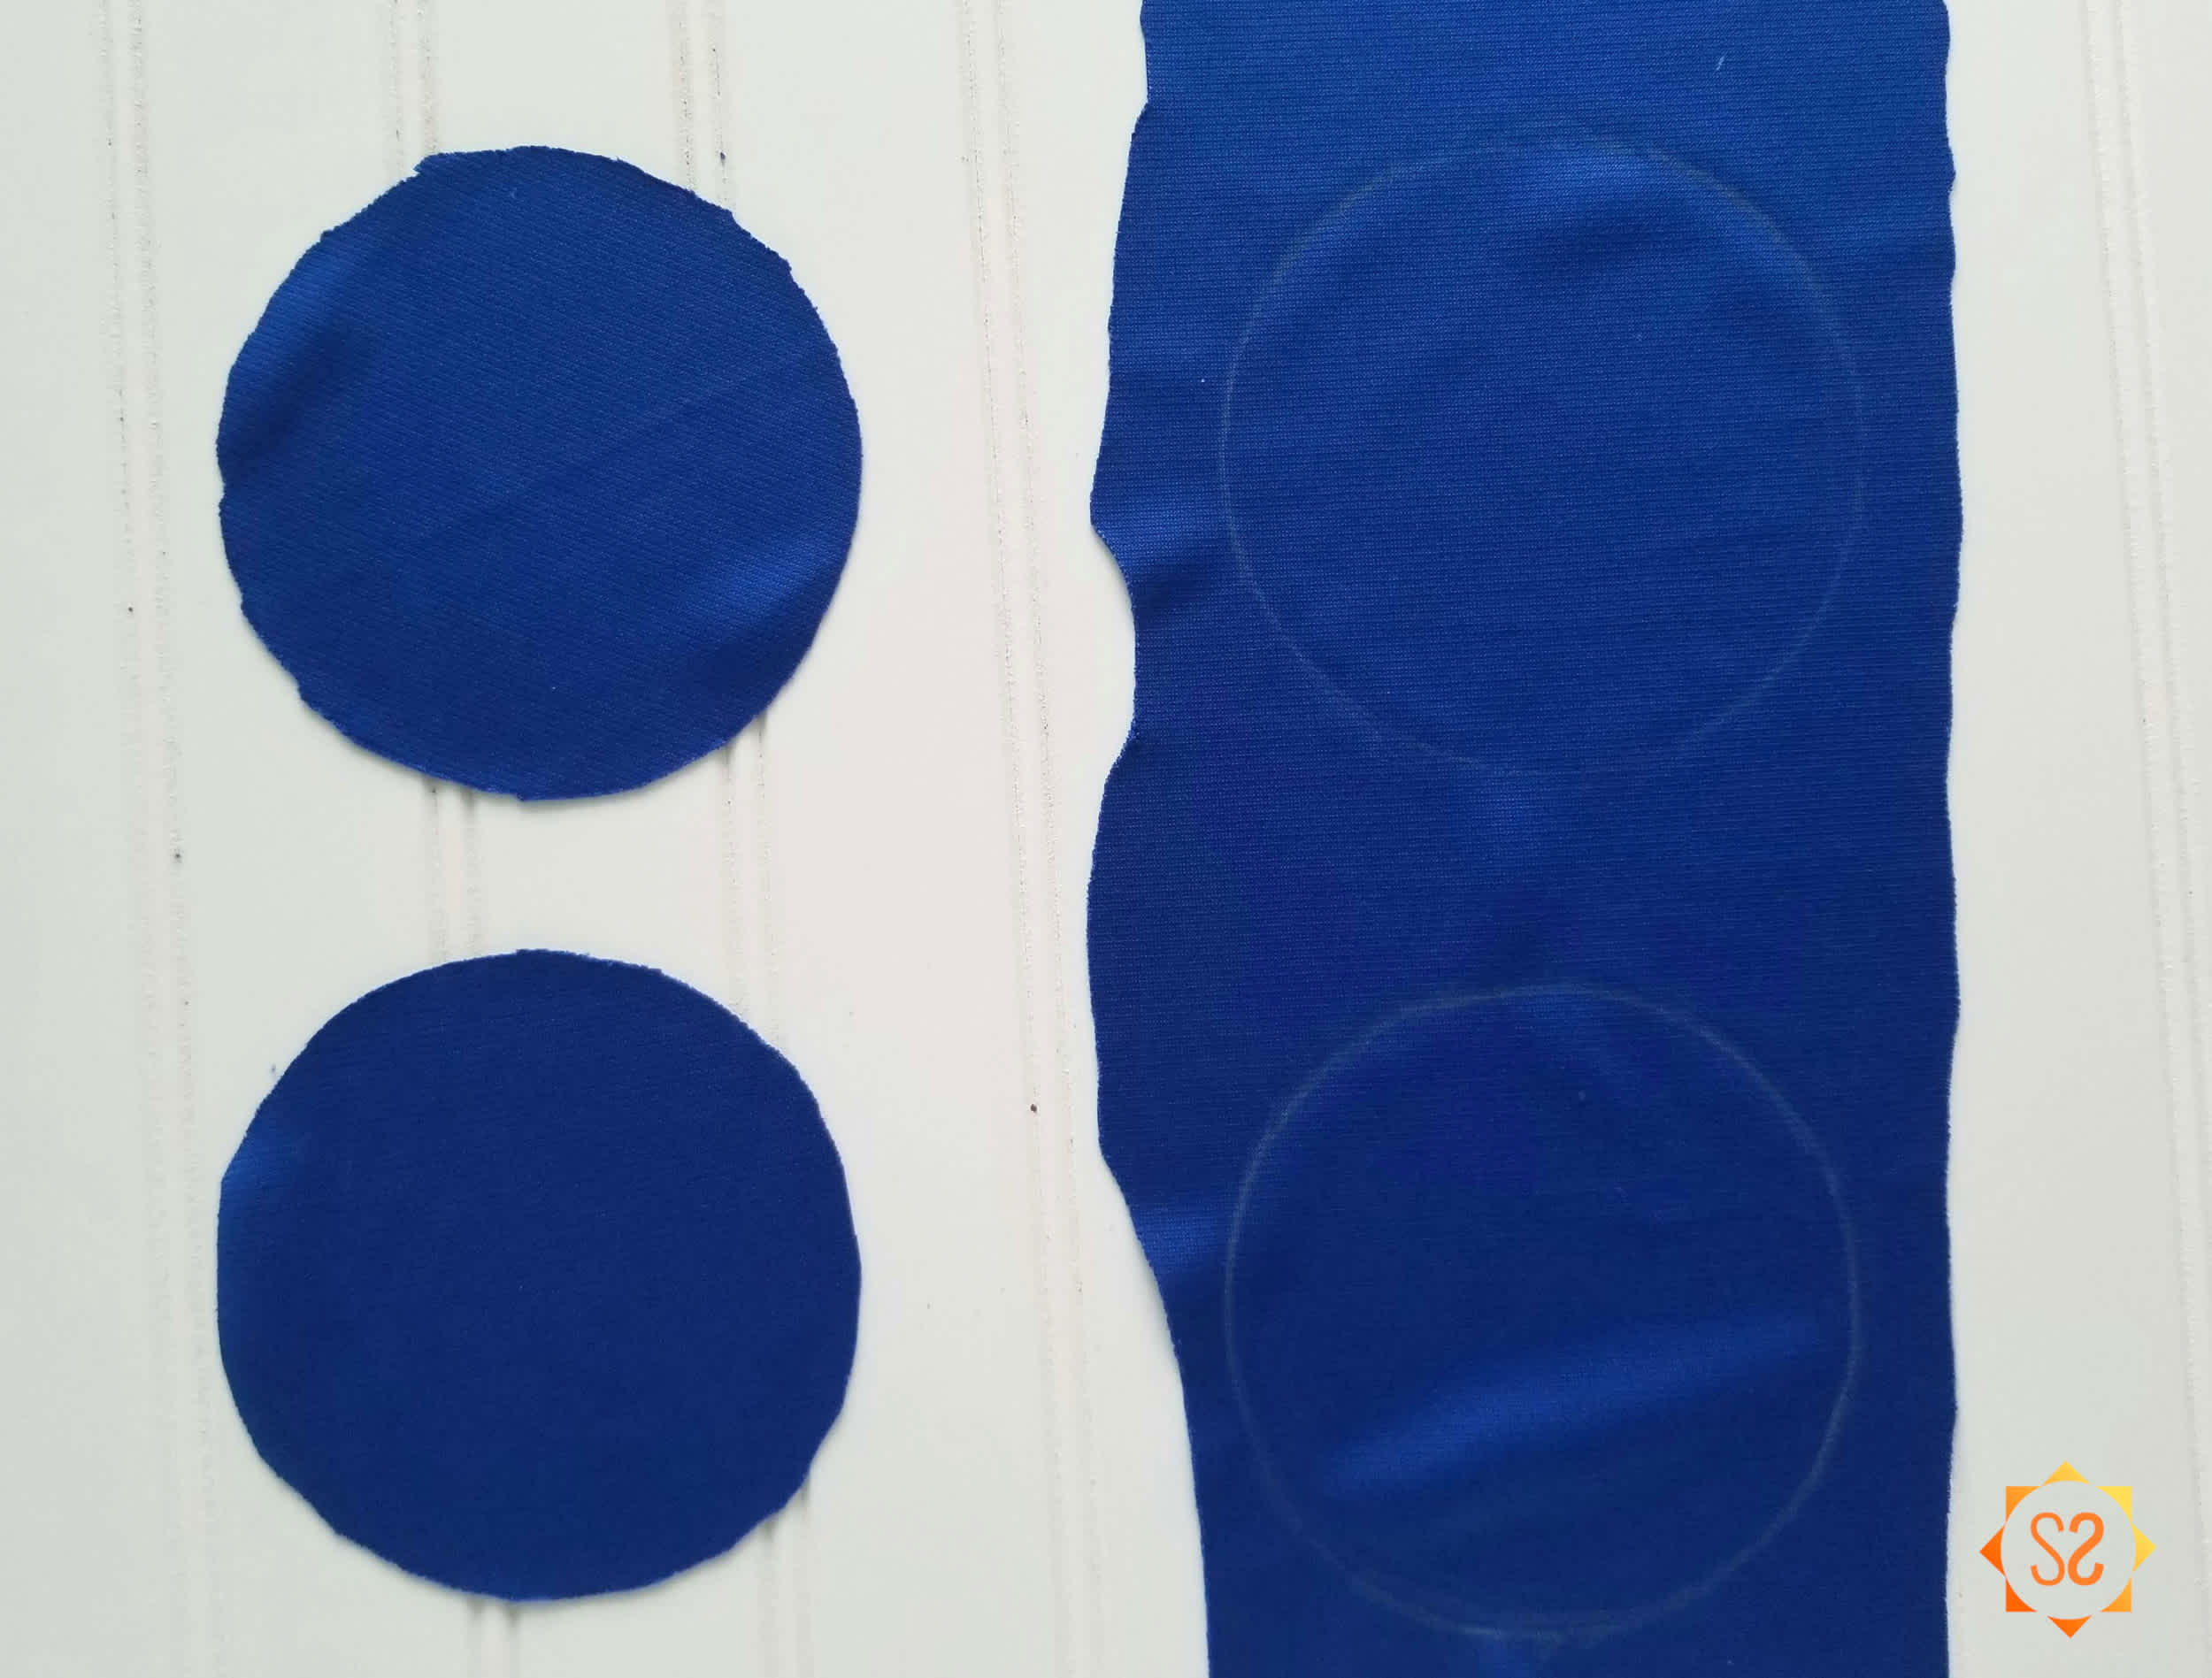 Two blue fabric circles next to a long piece of blue fabric with two circles drawn on it